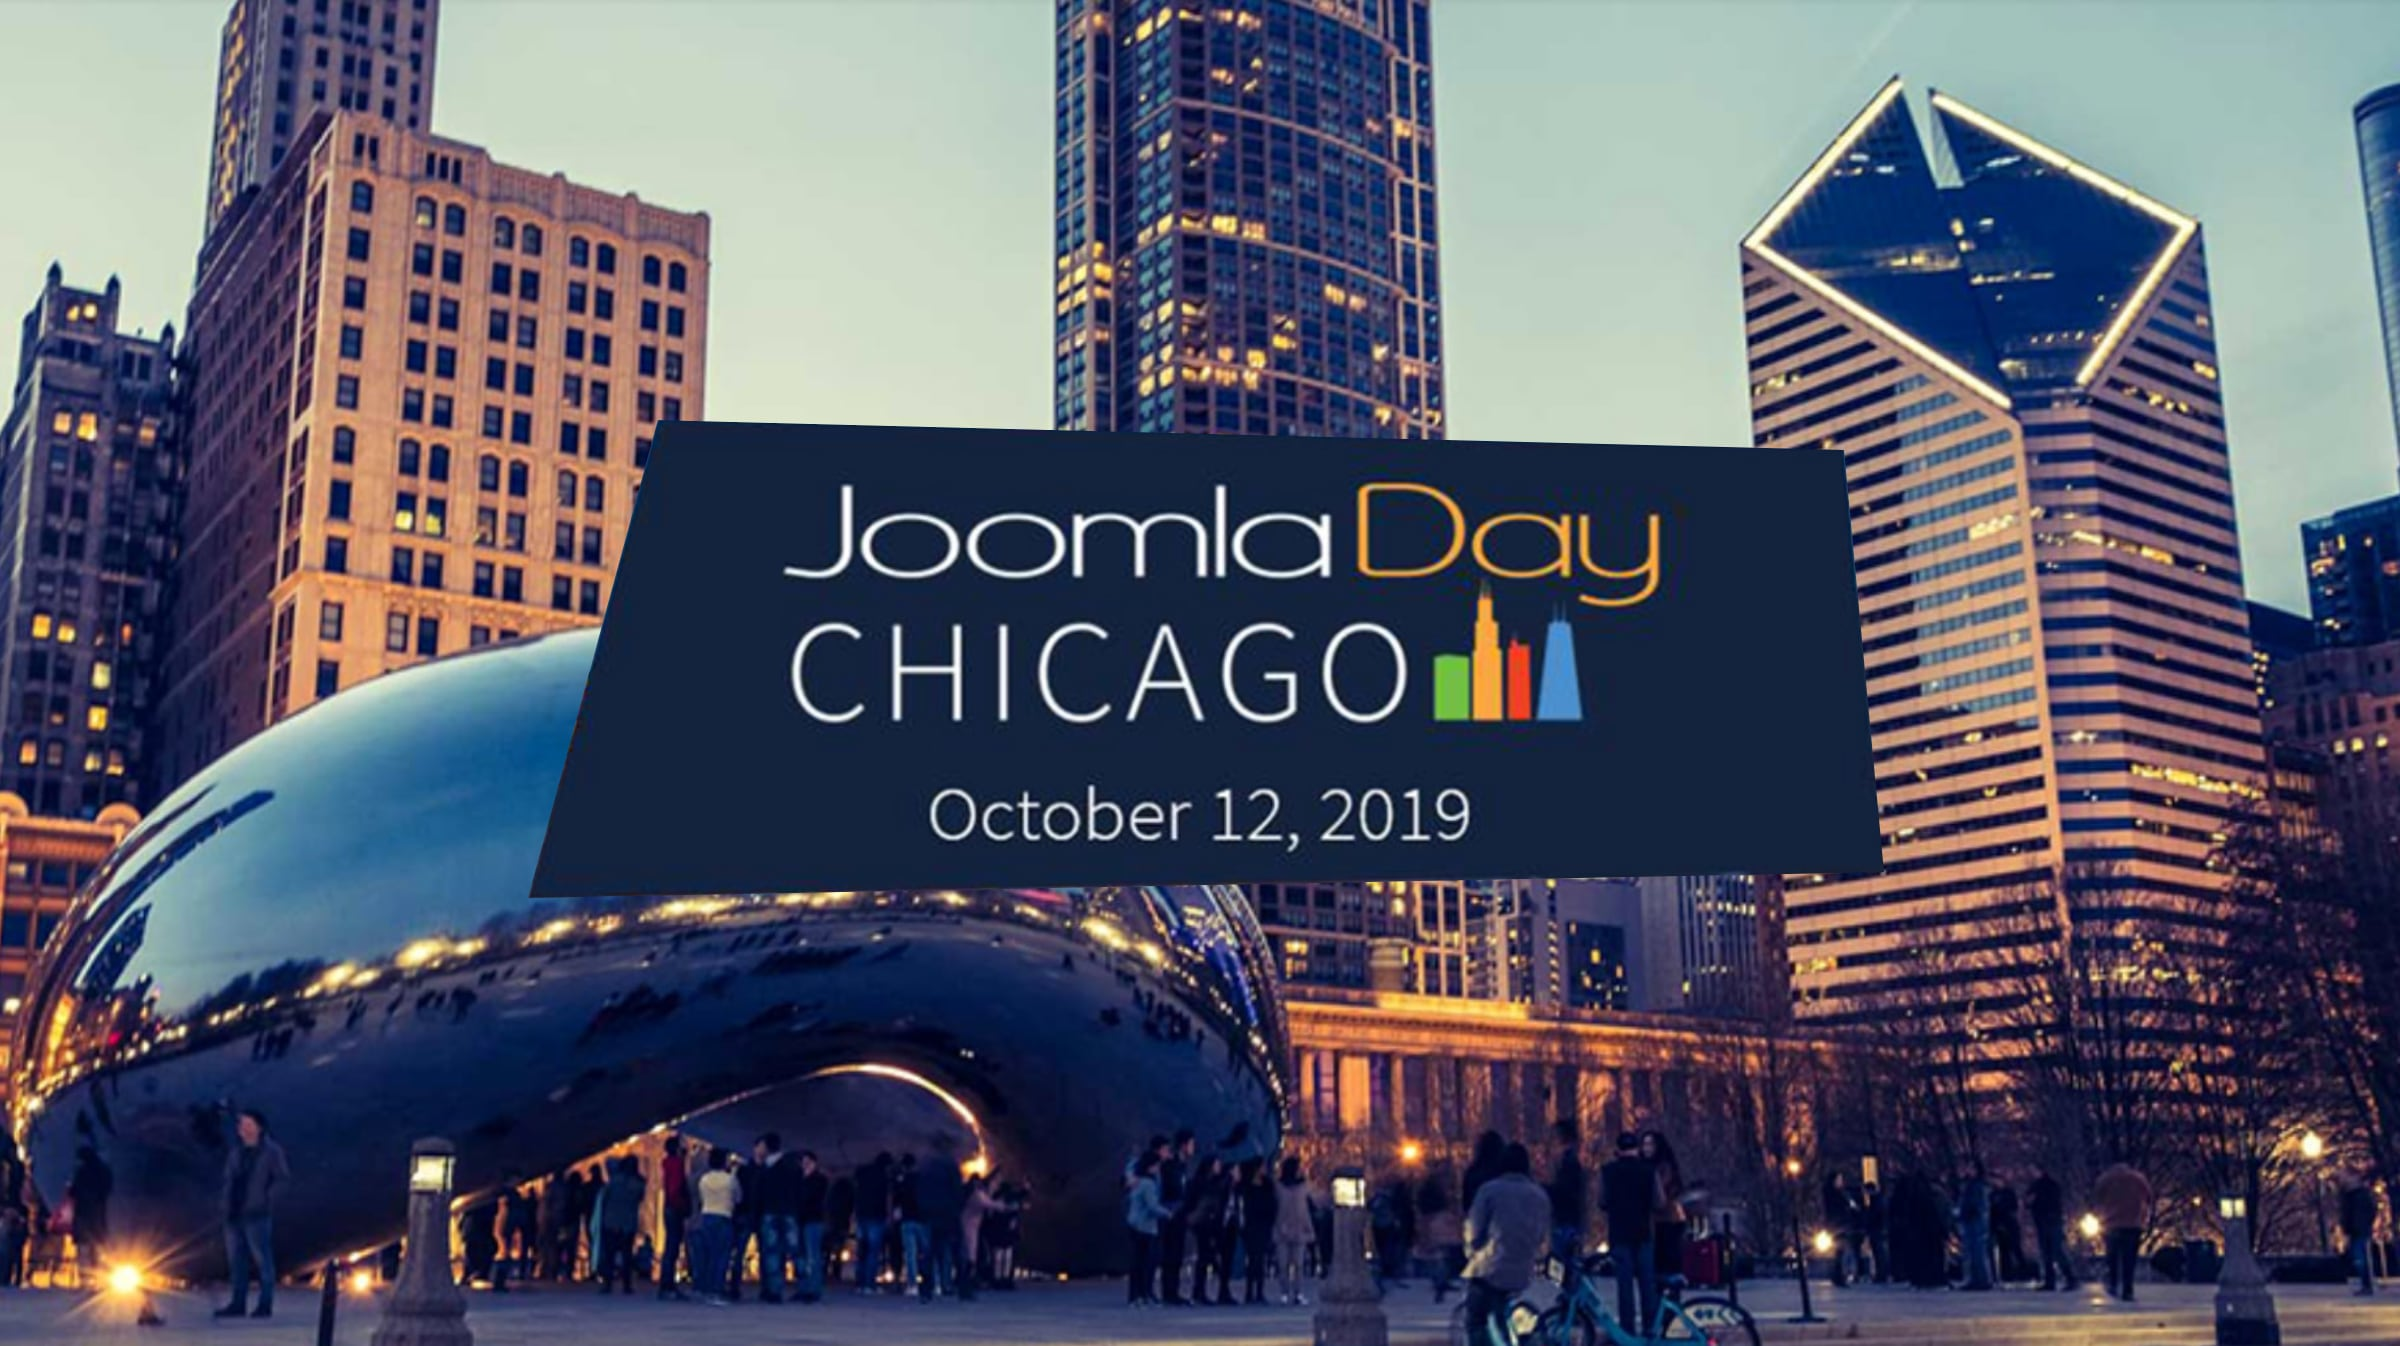 JoomlaDay Chicago 2019